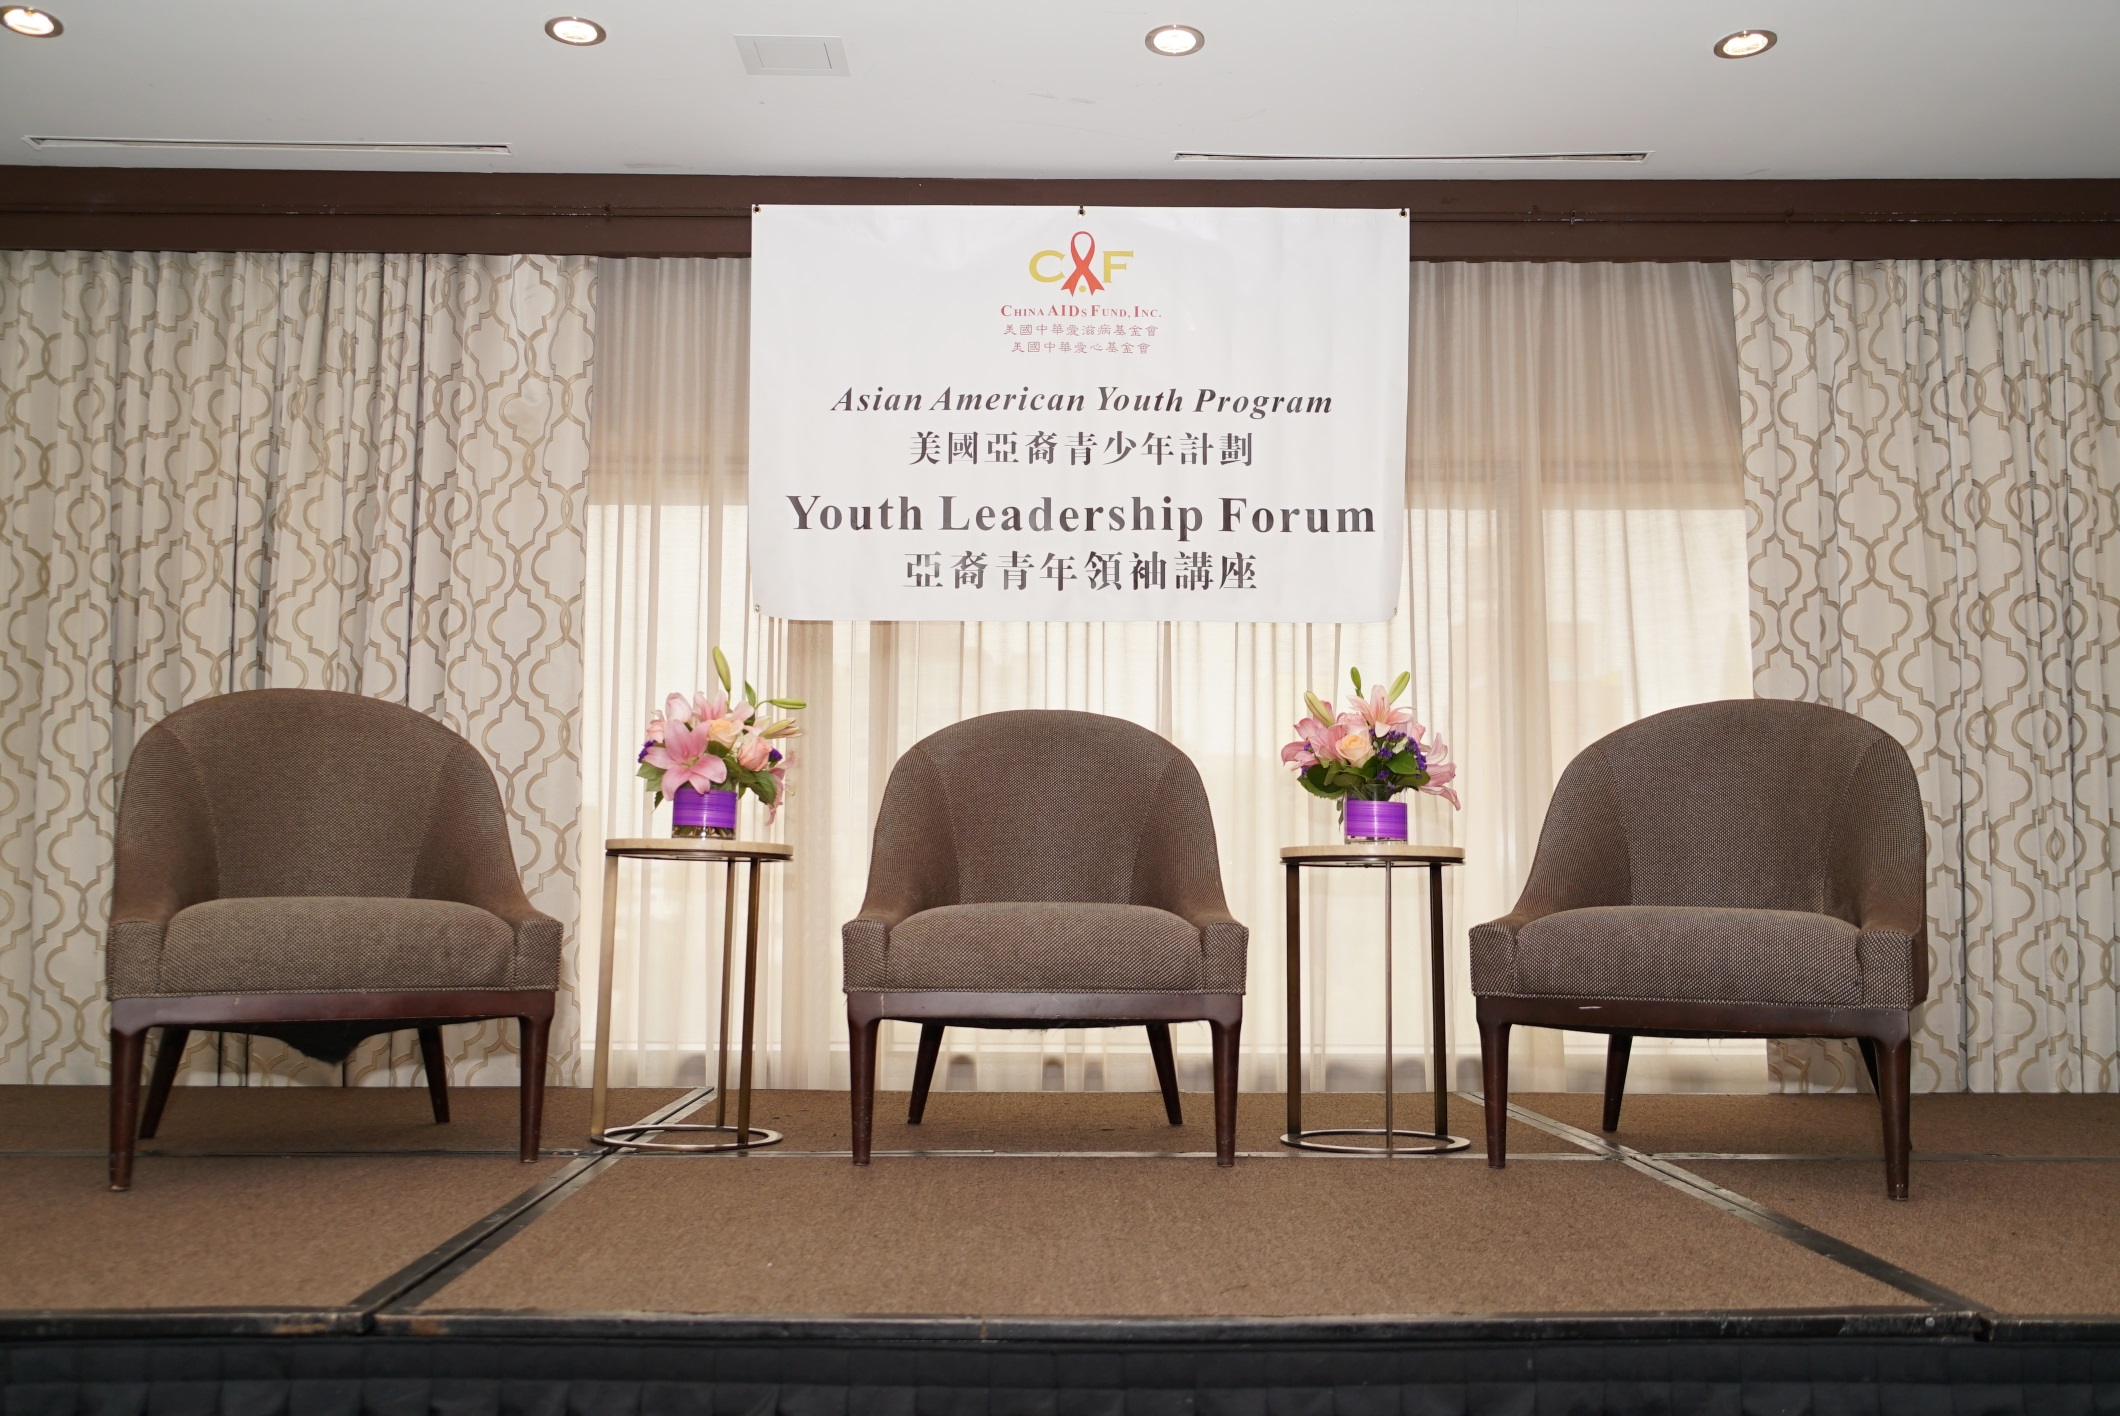 The 2017 Youth Leadership Forum Aims To Provide Chinese American Youths  With The Skills, Attitudes And Behaviors Needed To Successfully Navigate  The Dual ...